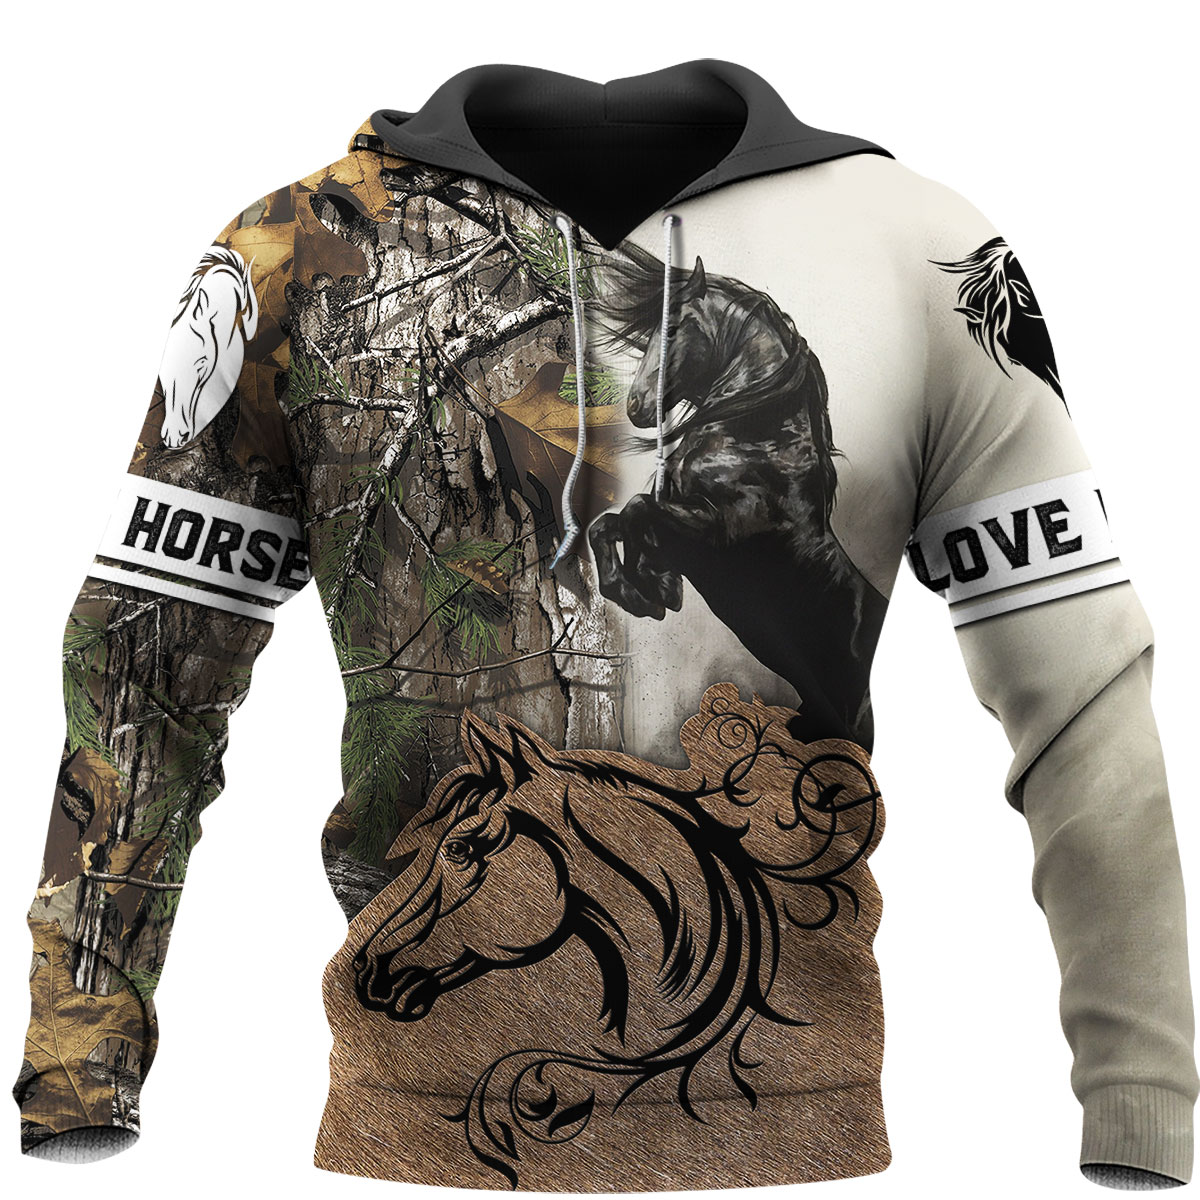 Beautiful Horse Brown Camo 3D All Over Printed Shirts